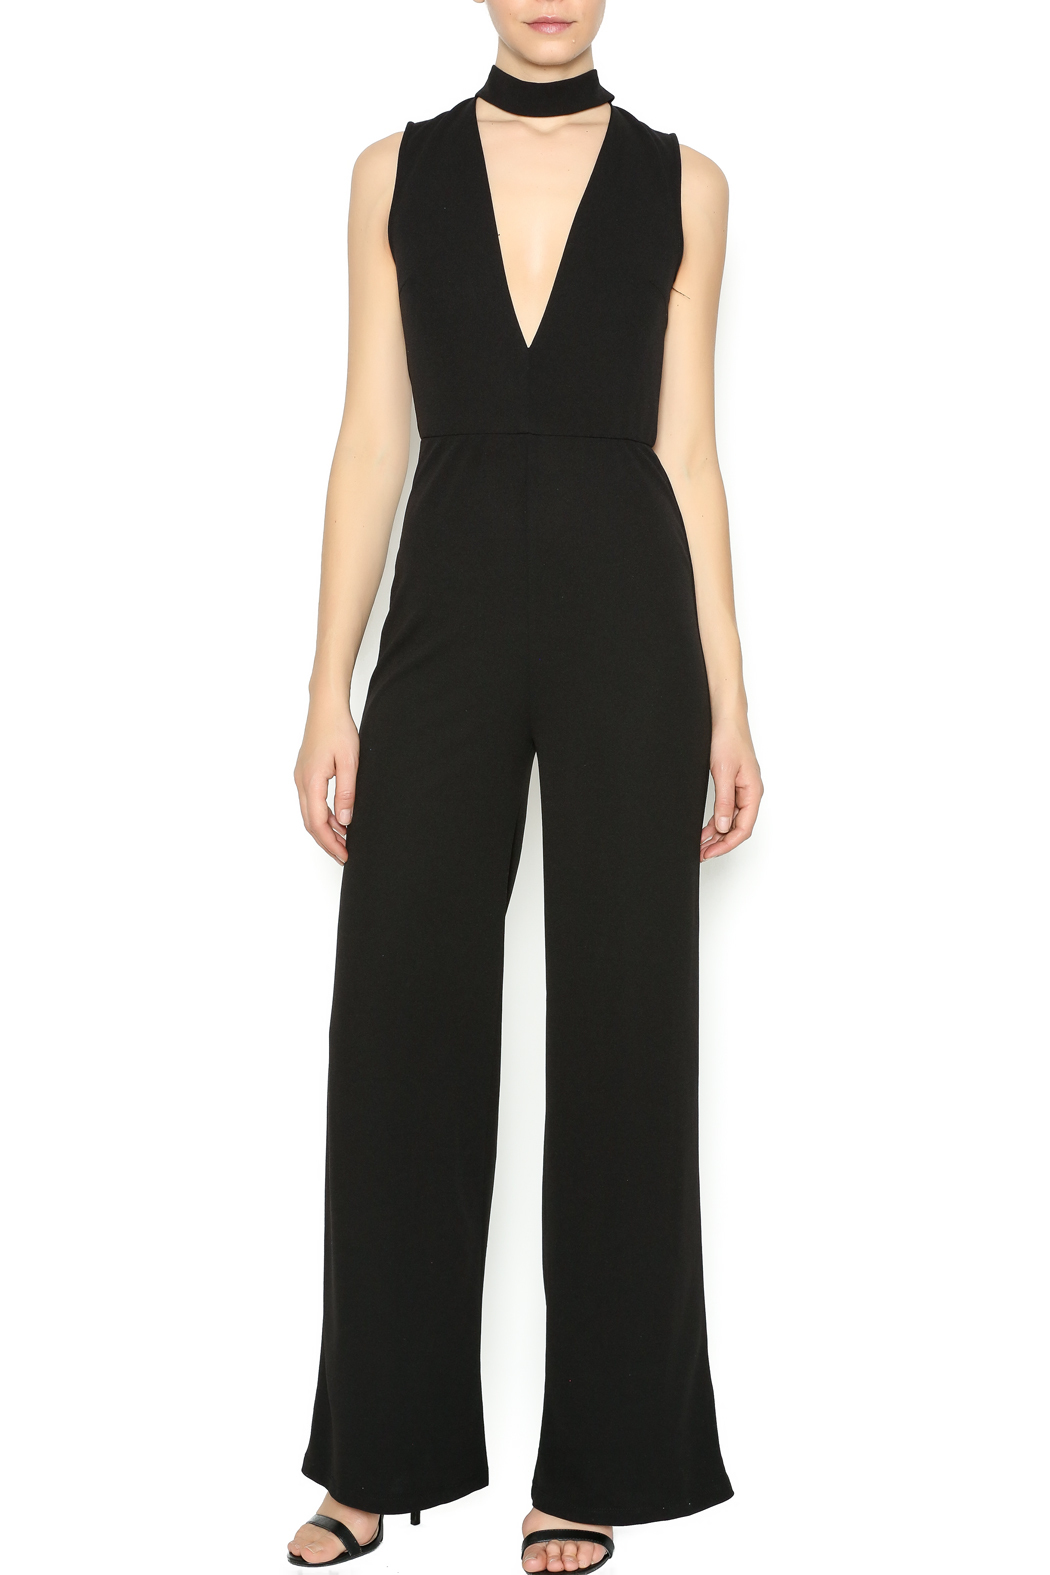 Lovely Day Halter Jumpsuit From Manhattan By Dor L Dor